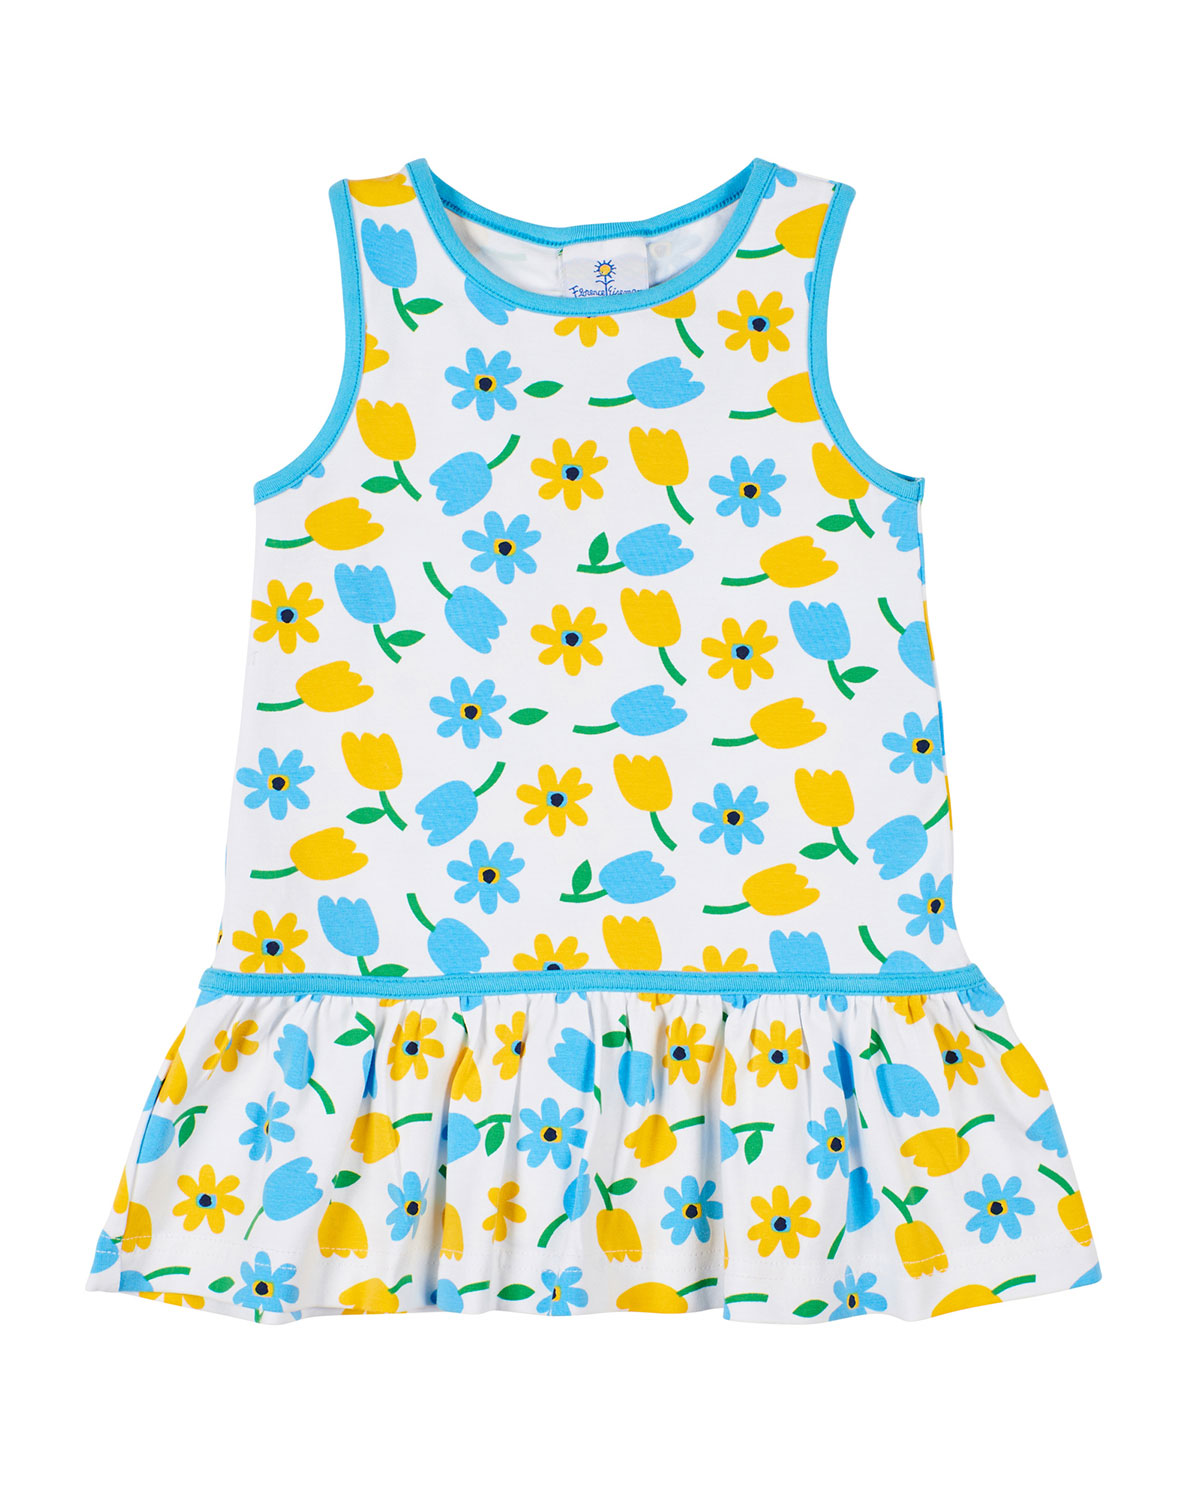 Florence Eiseman Tulip-Print Sleeveless Dress, Size 2-6X